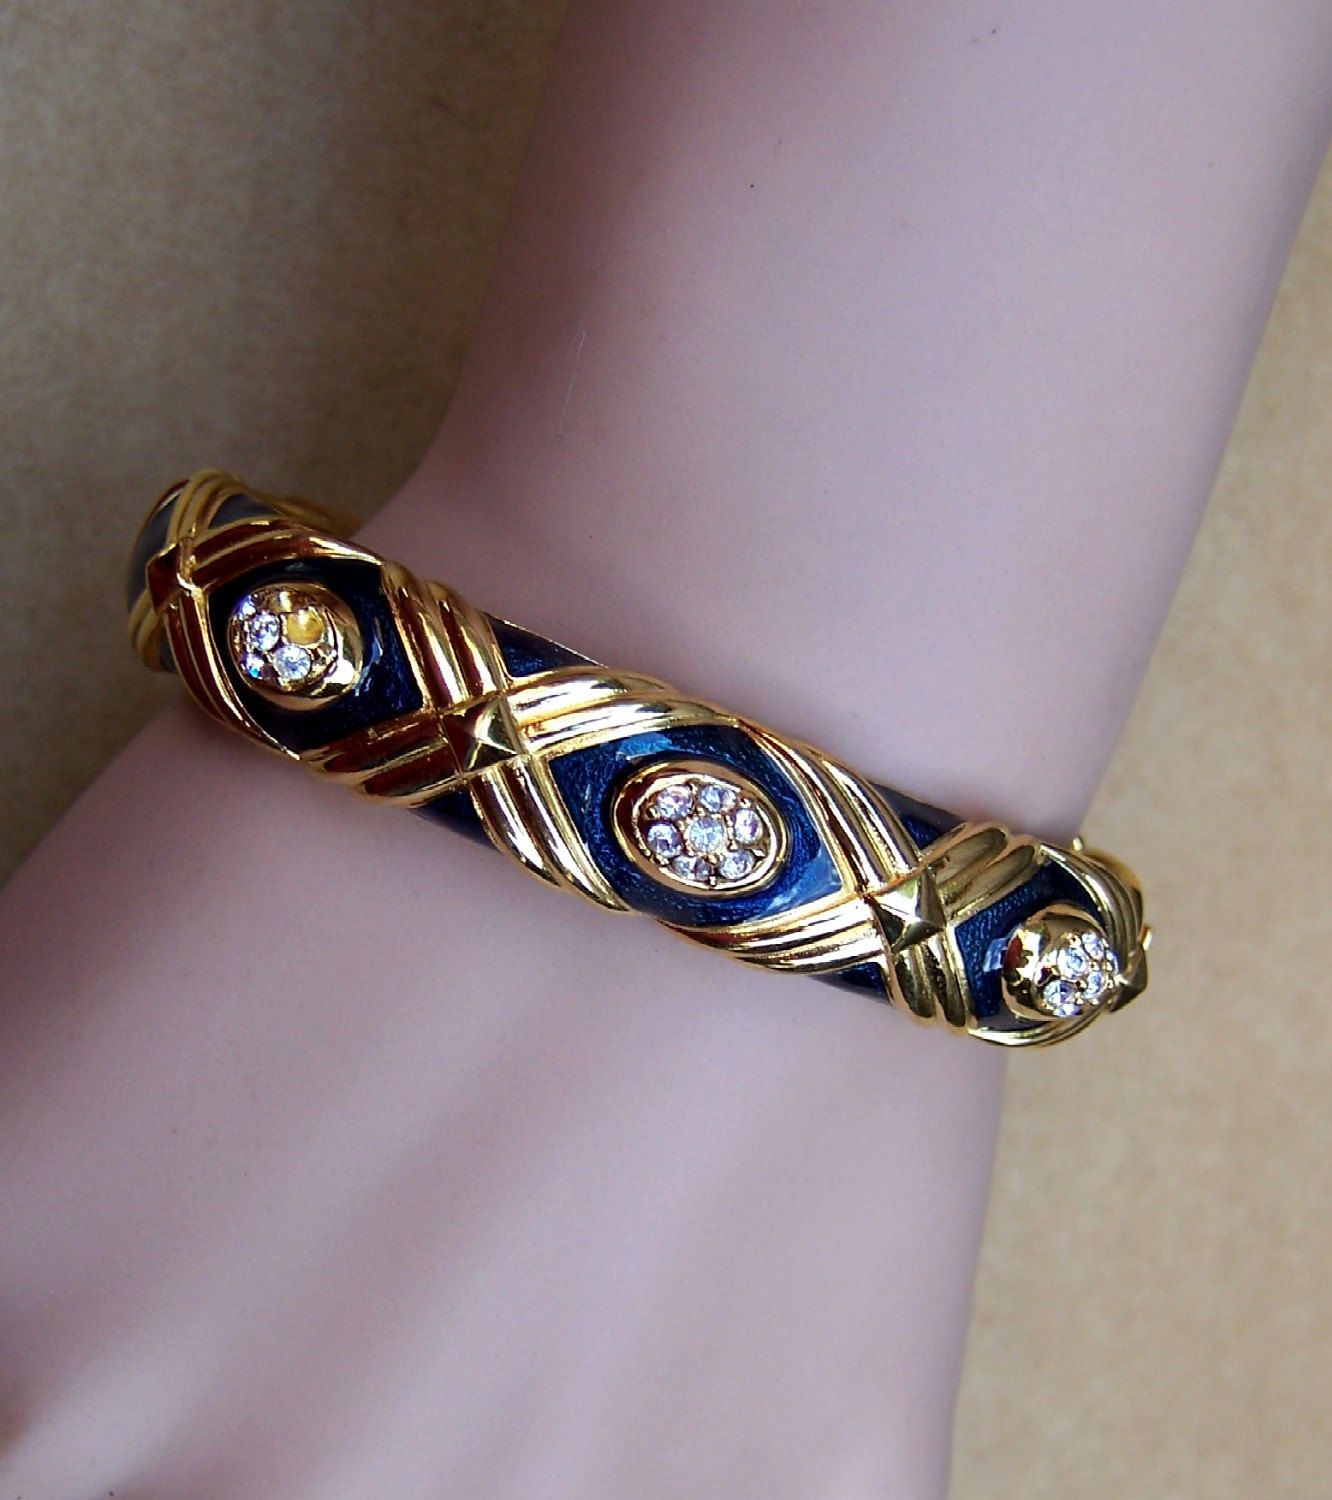 gallery estate in premier lane kenneth rhinestone rainbow bracelet kjl products gem colors clamper